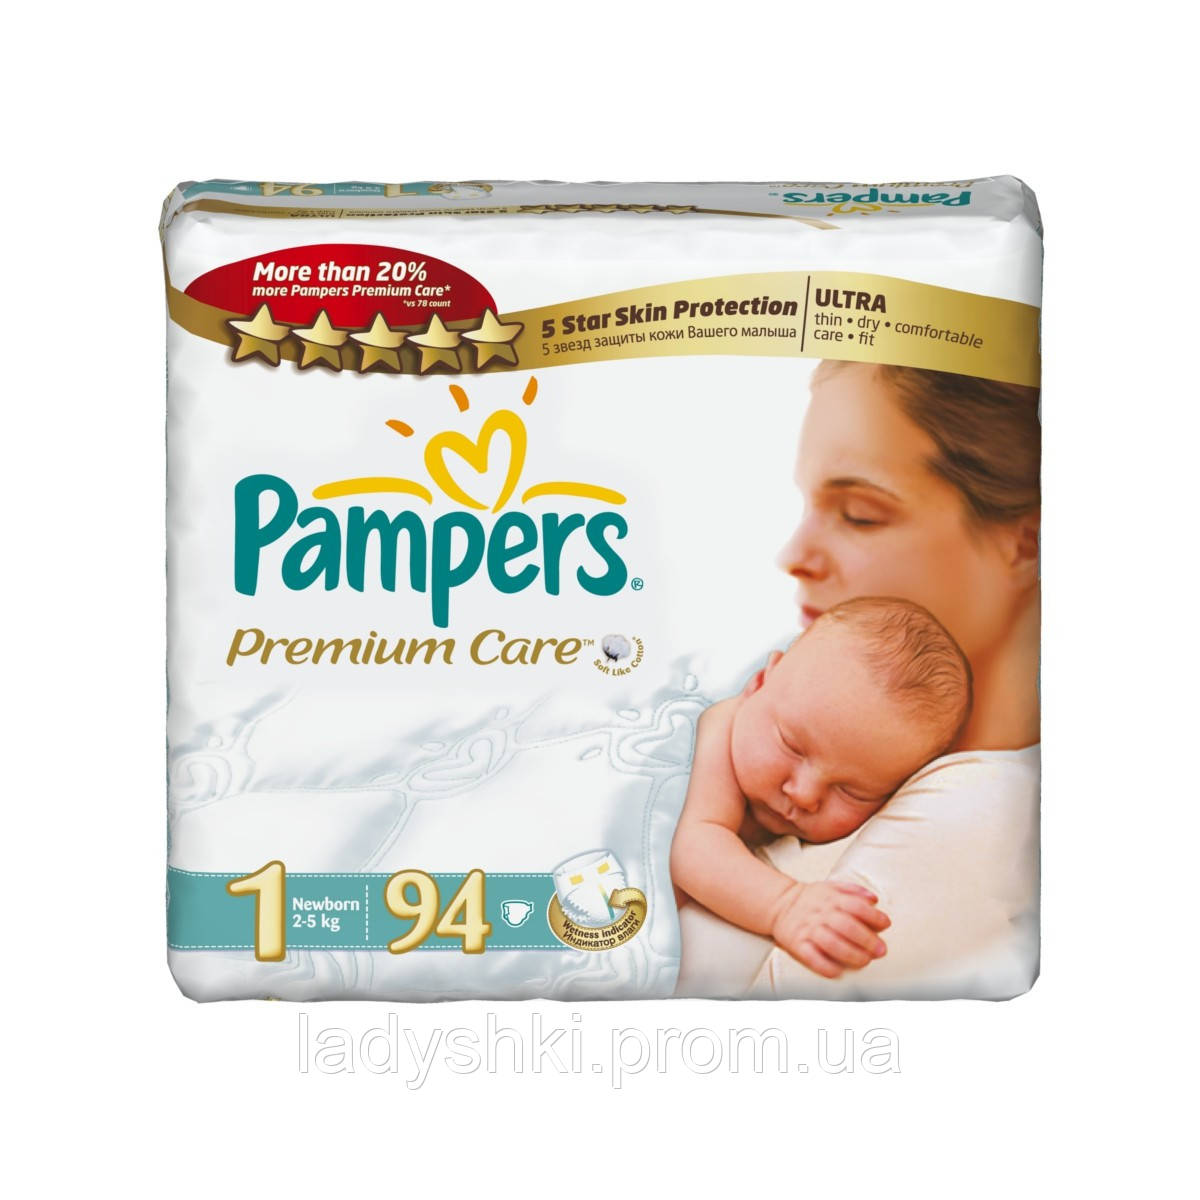 Подгузники Pampers Premium Care Newborn 1 (2-5 кг) 94 шт. памперс ... 8d3e28abcee